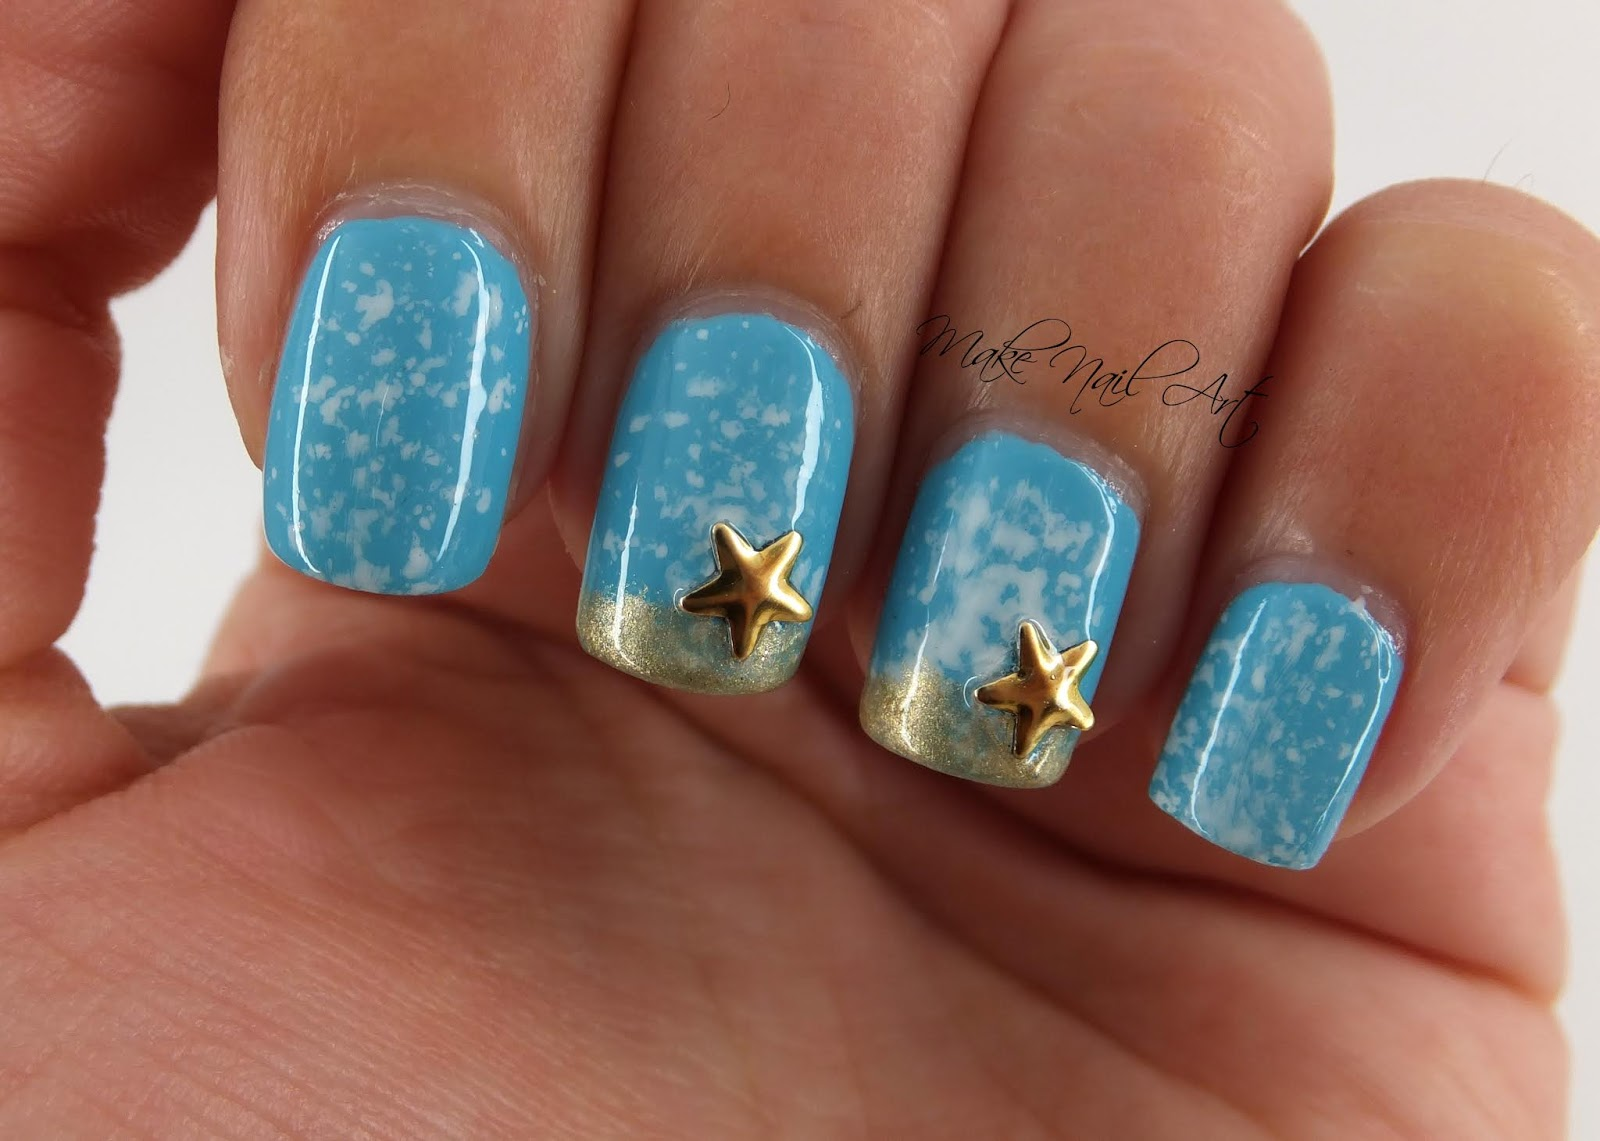 Make Nail Art: Summer Ocean Starfish Nail Art Design Manicure ...